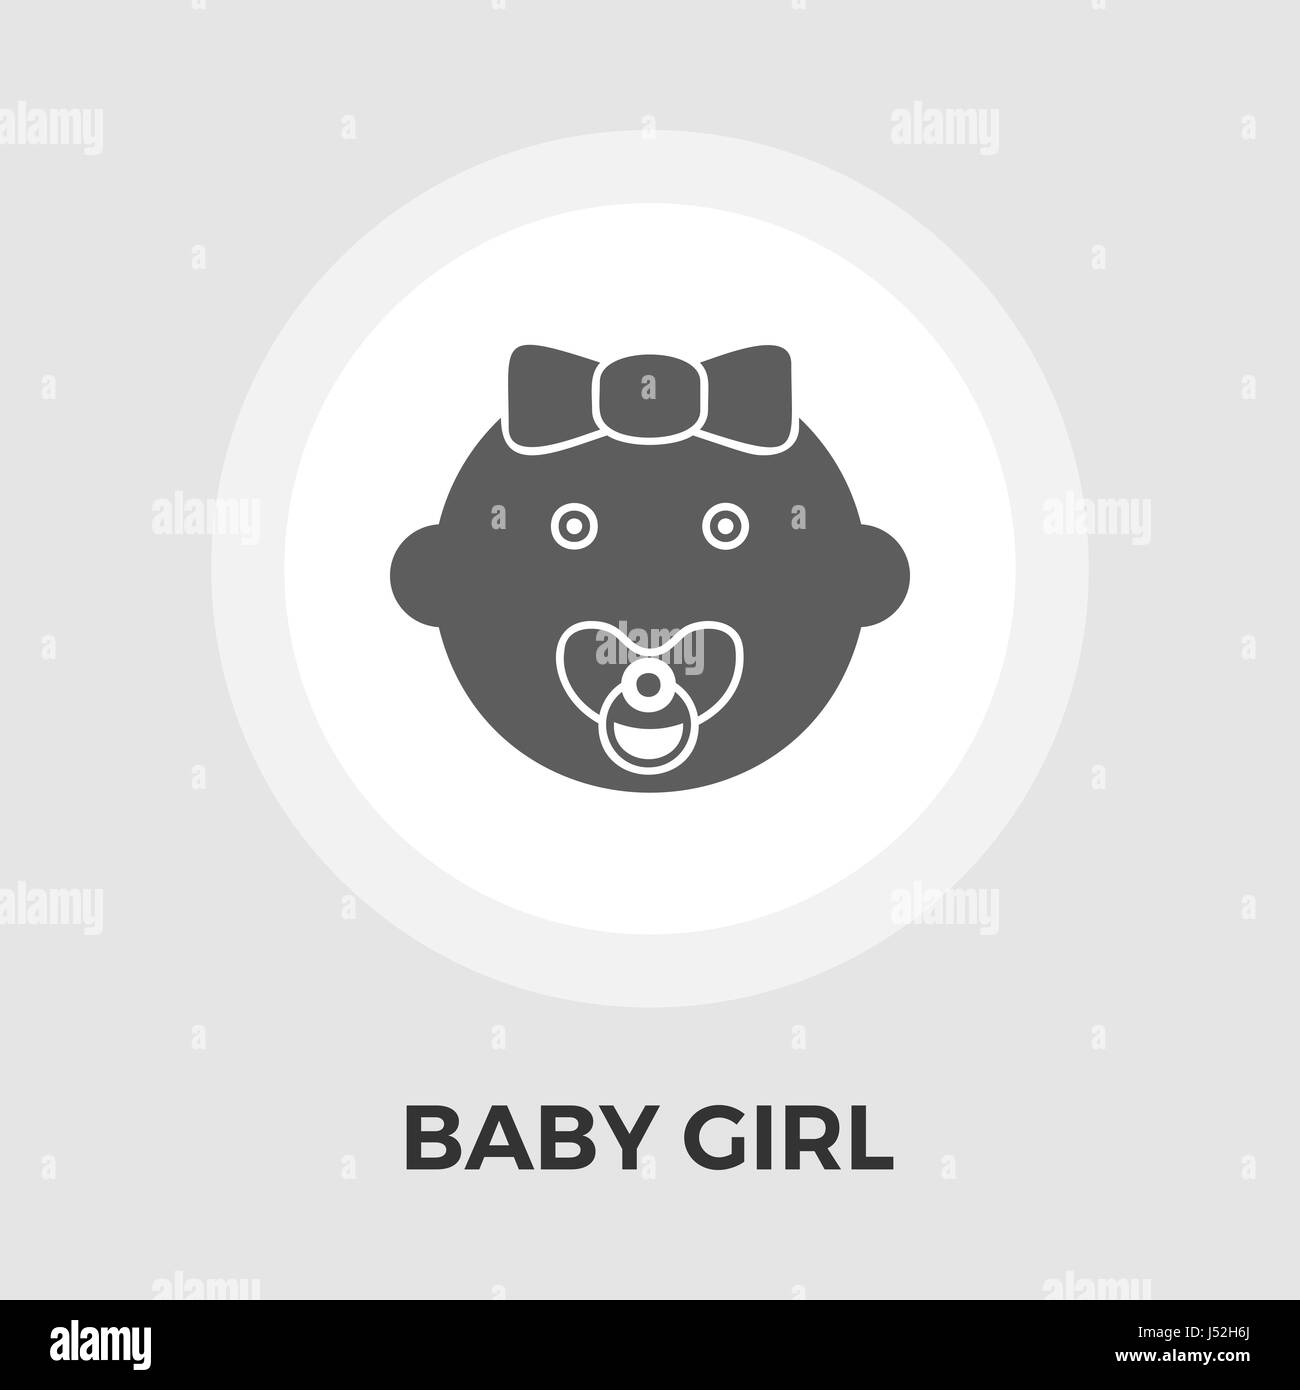 Baby girl Icon Vector. Flat icon isolated on the white background. Editable EPS file. Vector illustration. - Stock Vector